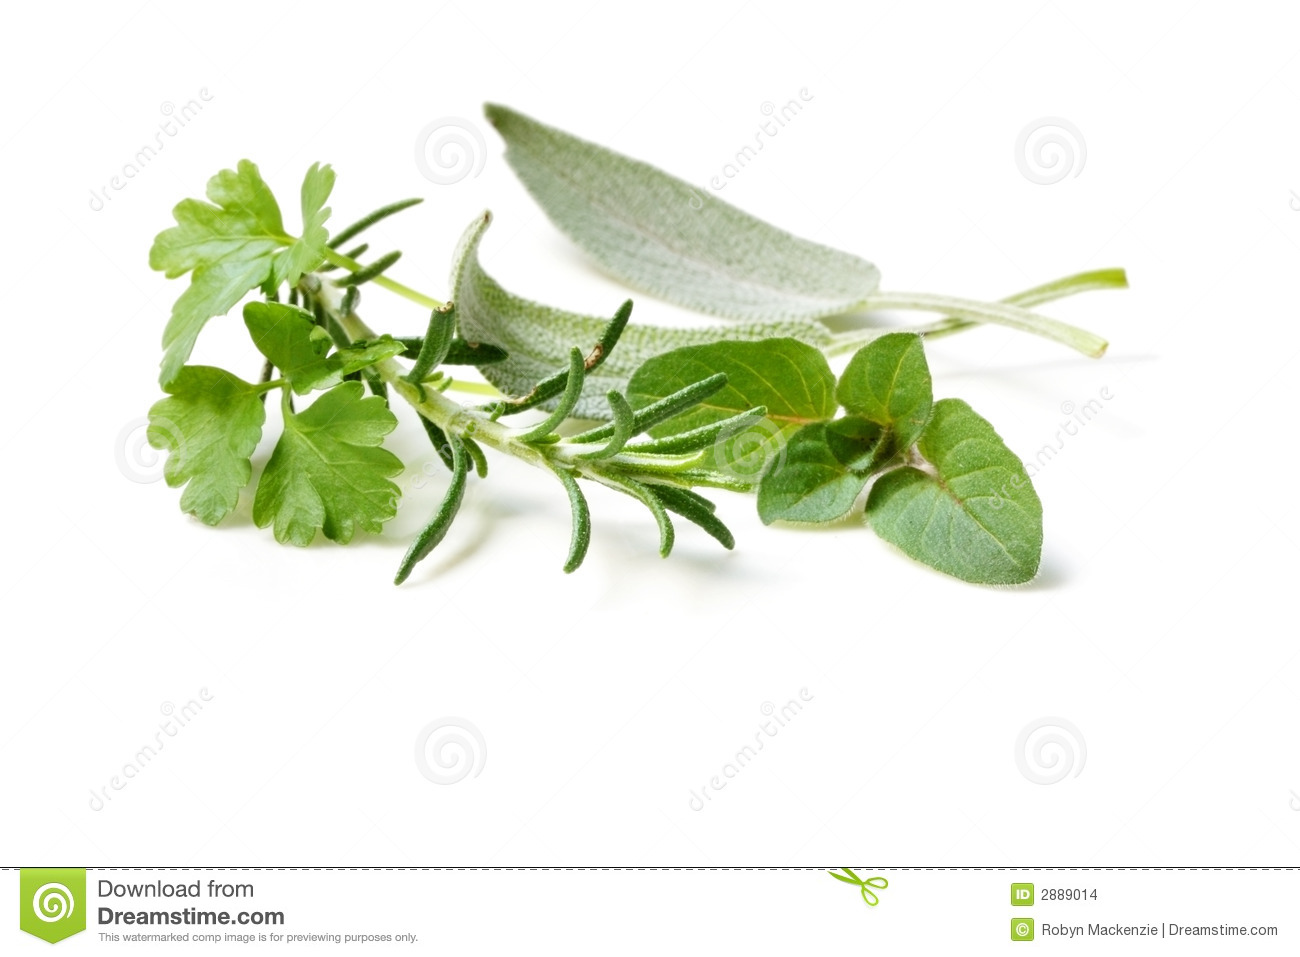 Fresh-picked Herbs